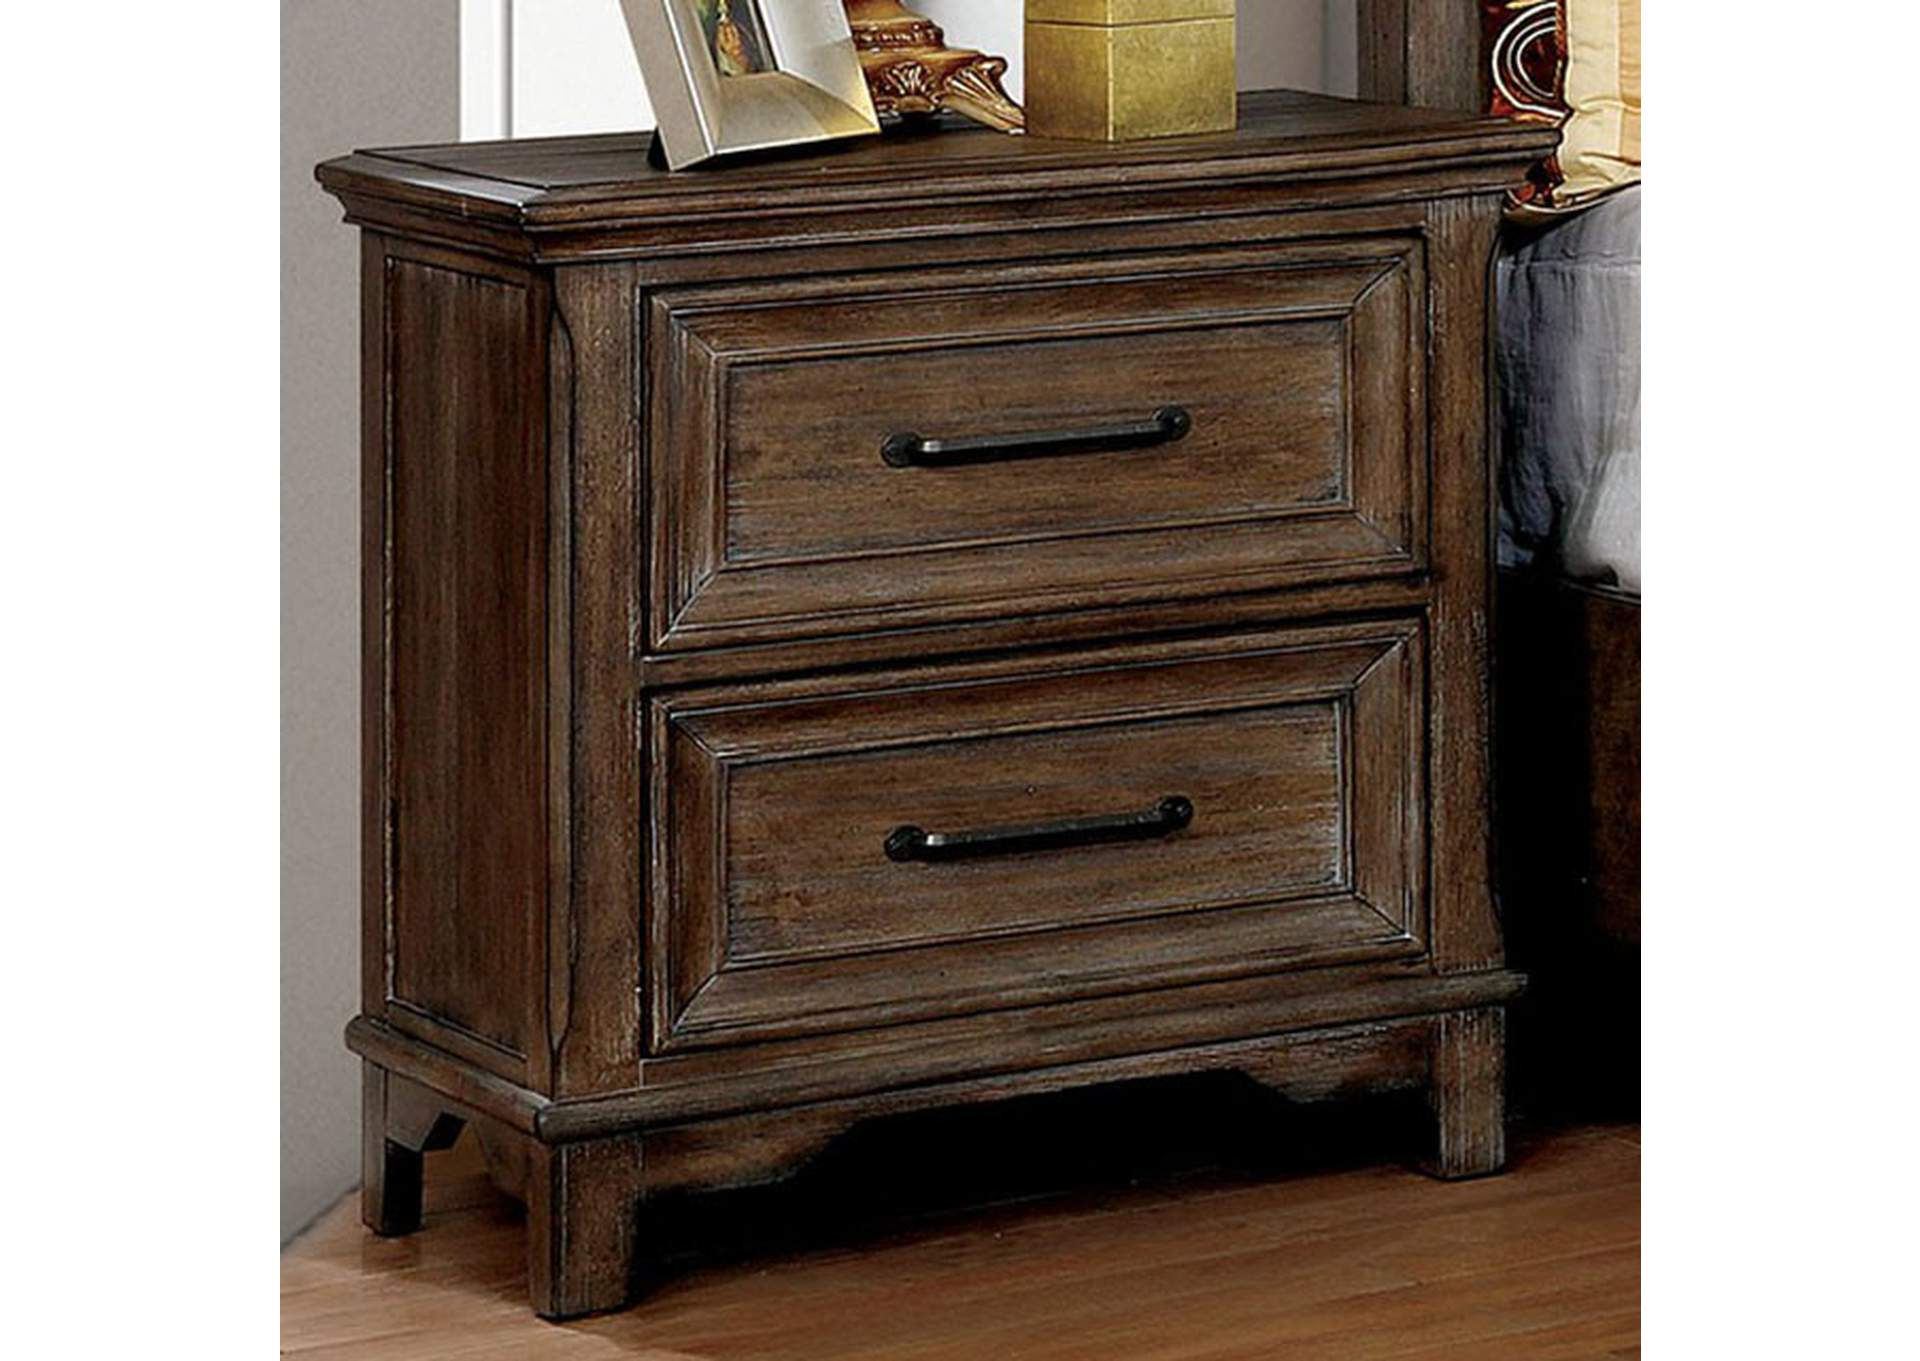 Oberon Rustic Oak Nightstand,Furniture of America